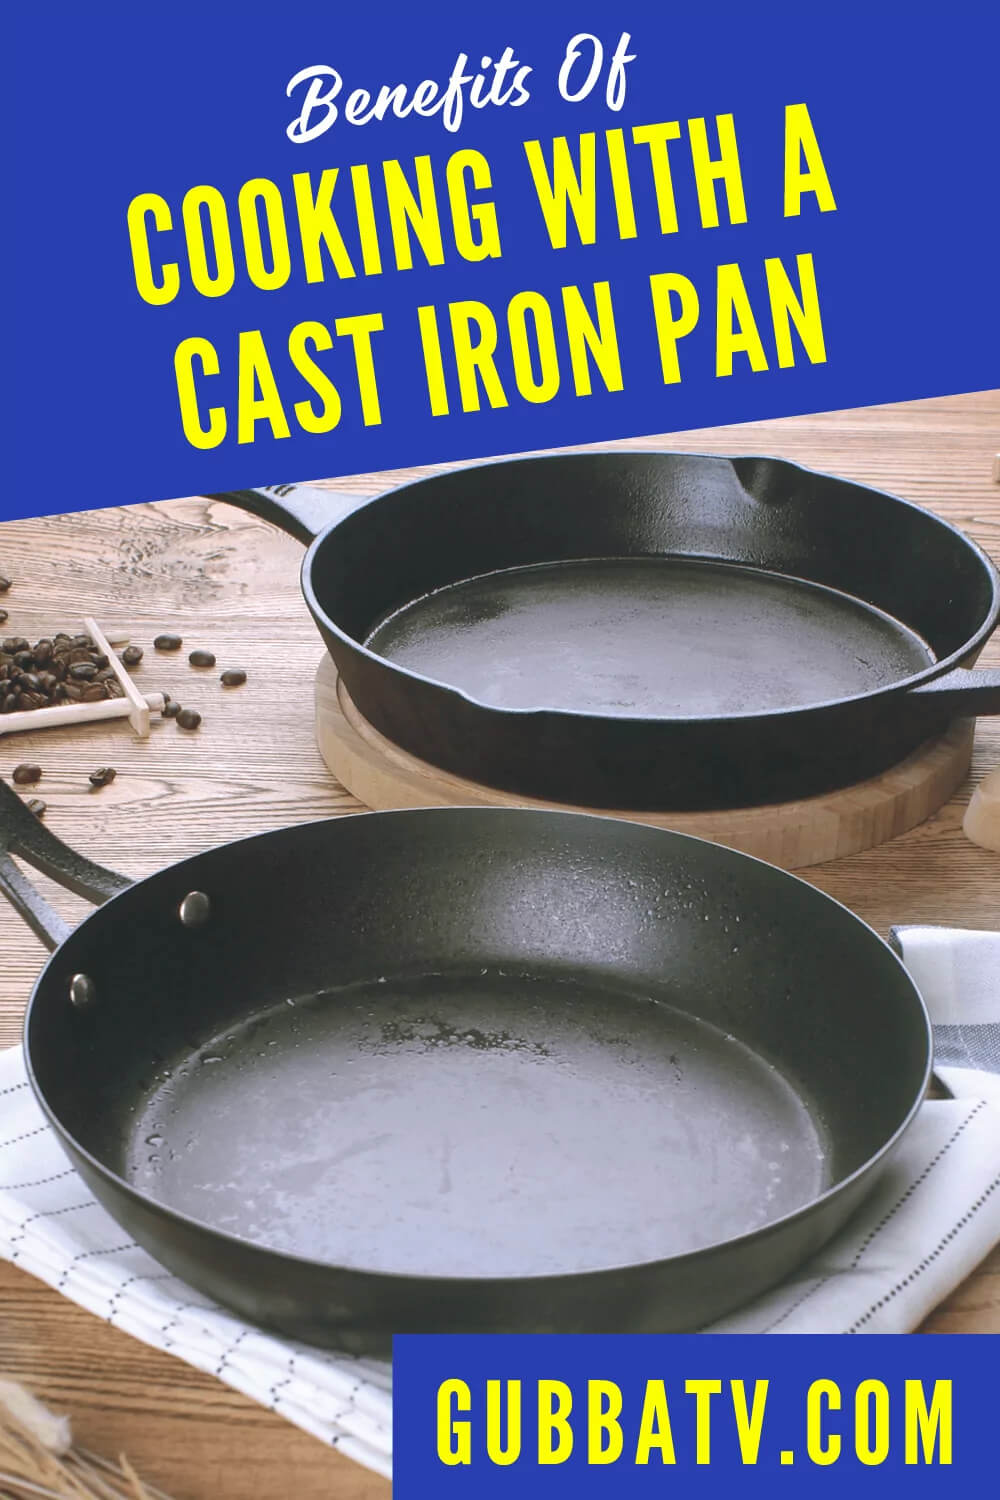 Benefits Of Cooking With A Cast Iron Pan